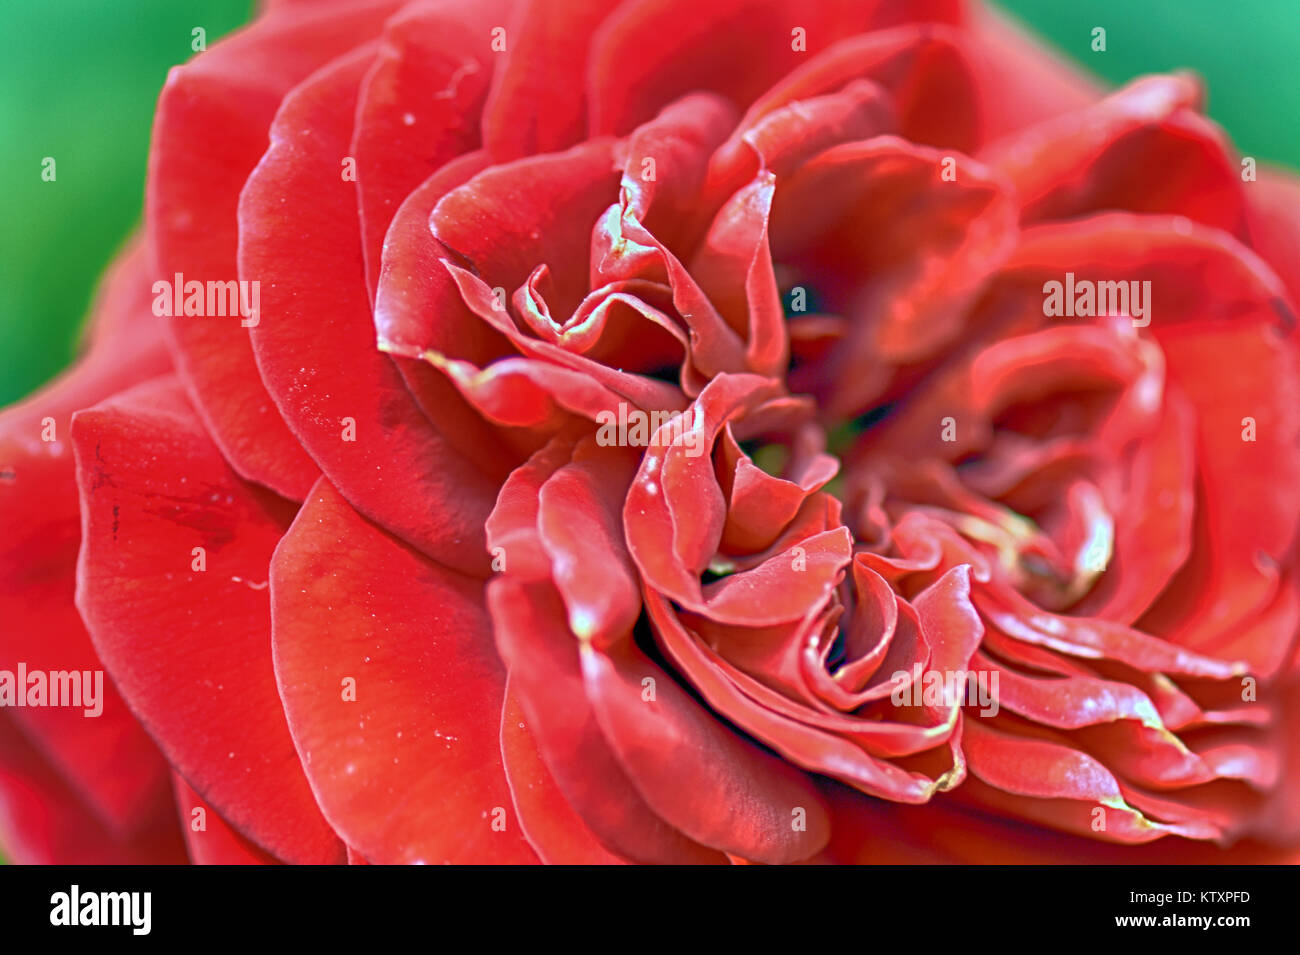 Roses - Flowers of the world - Stock Image